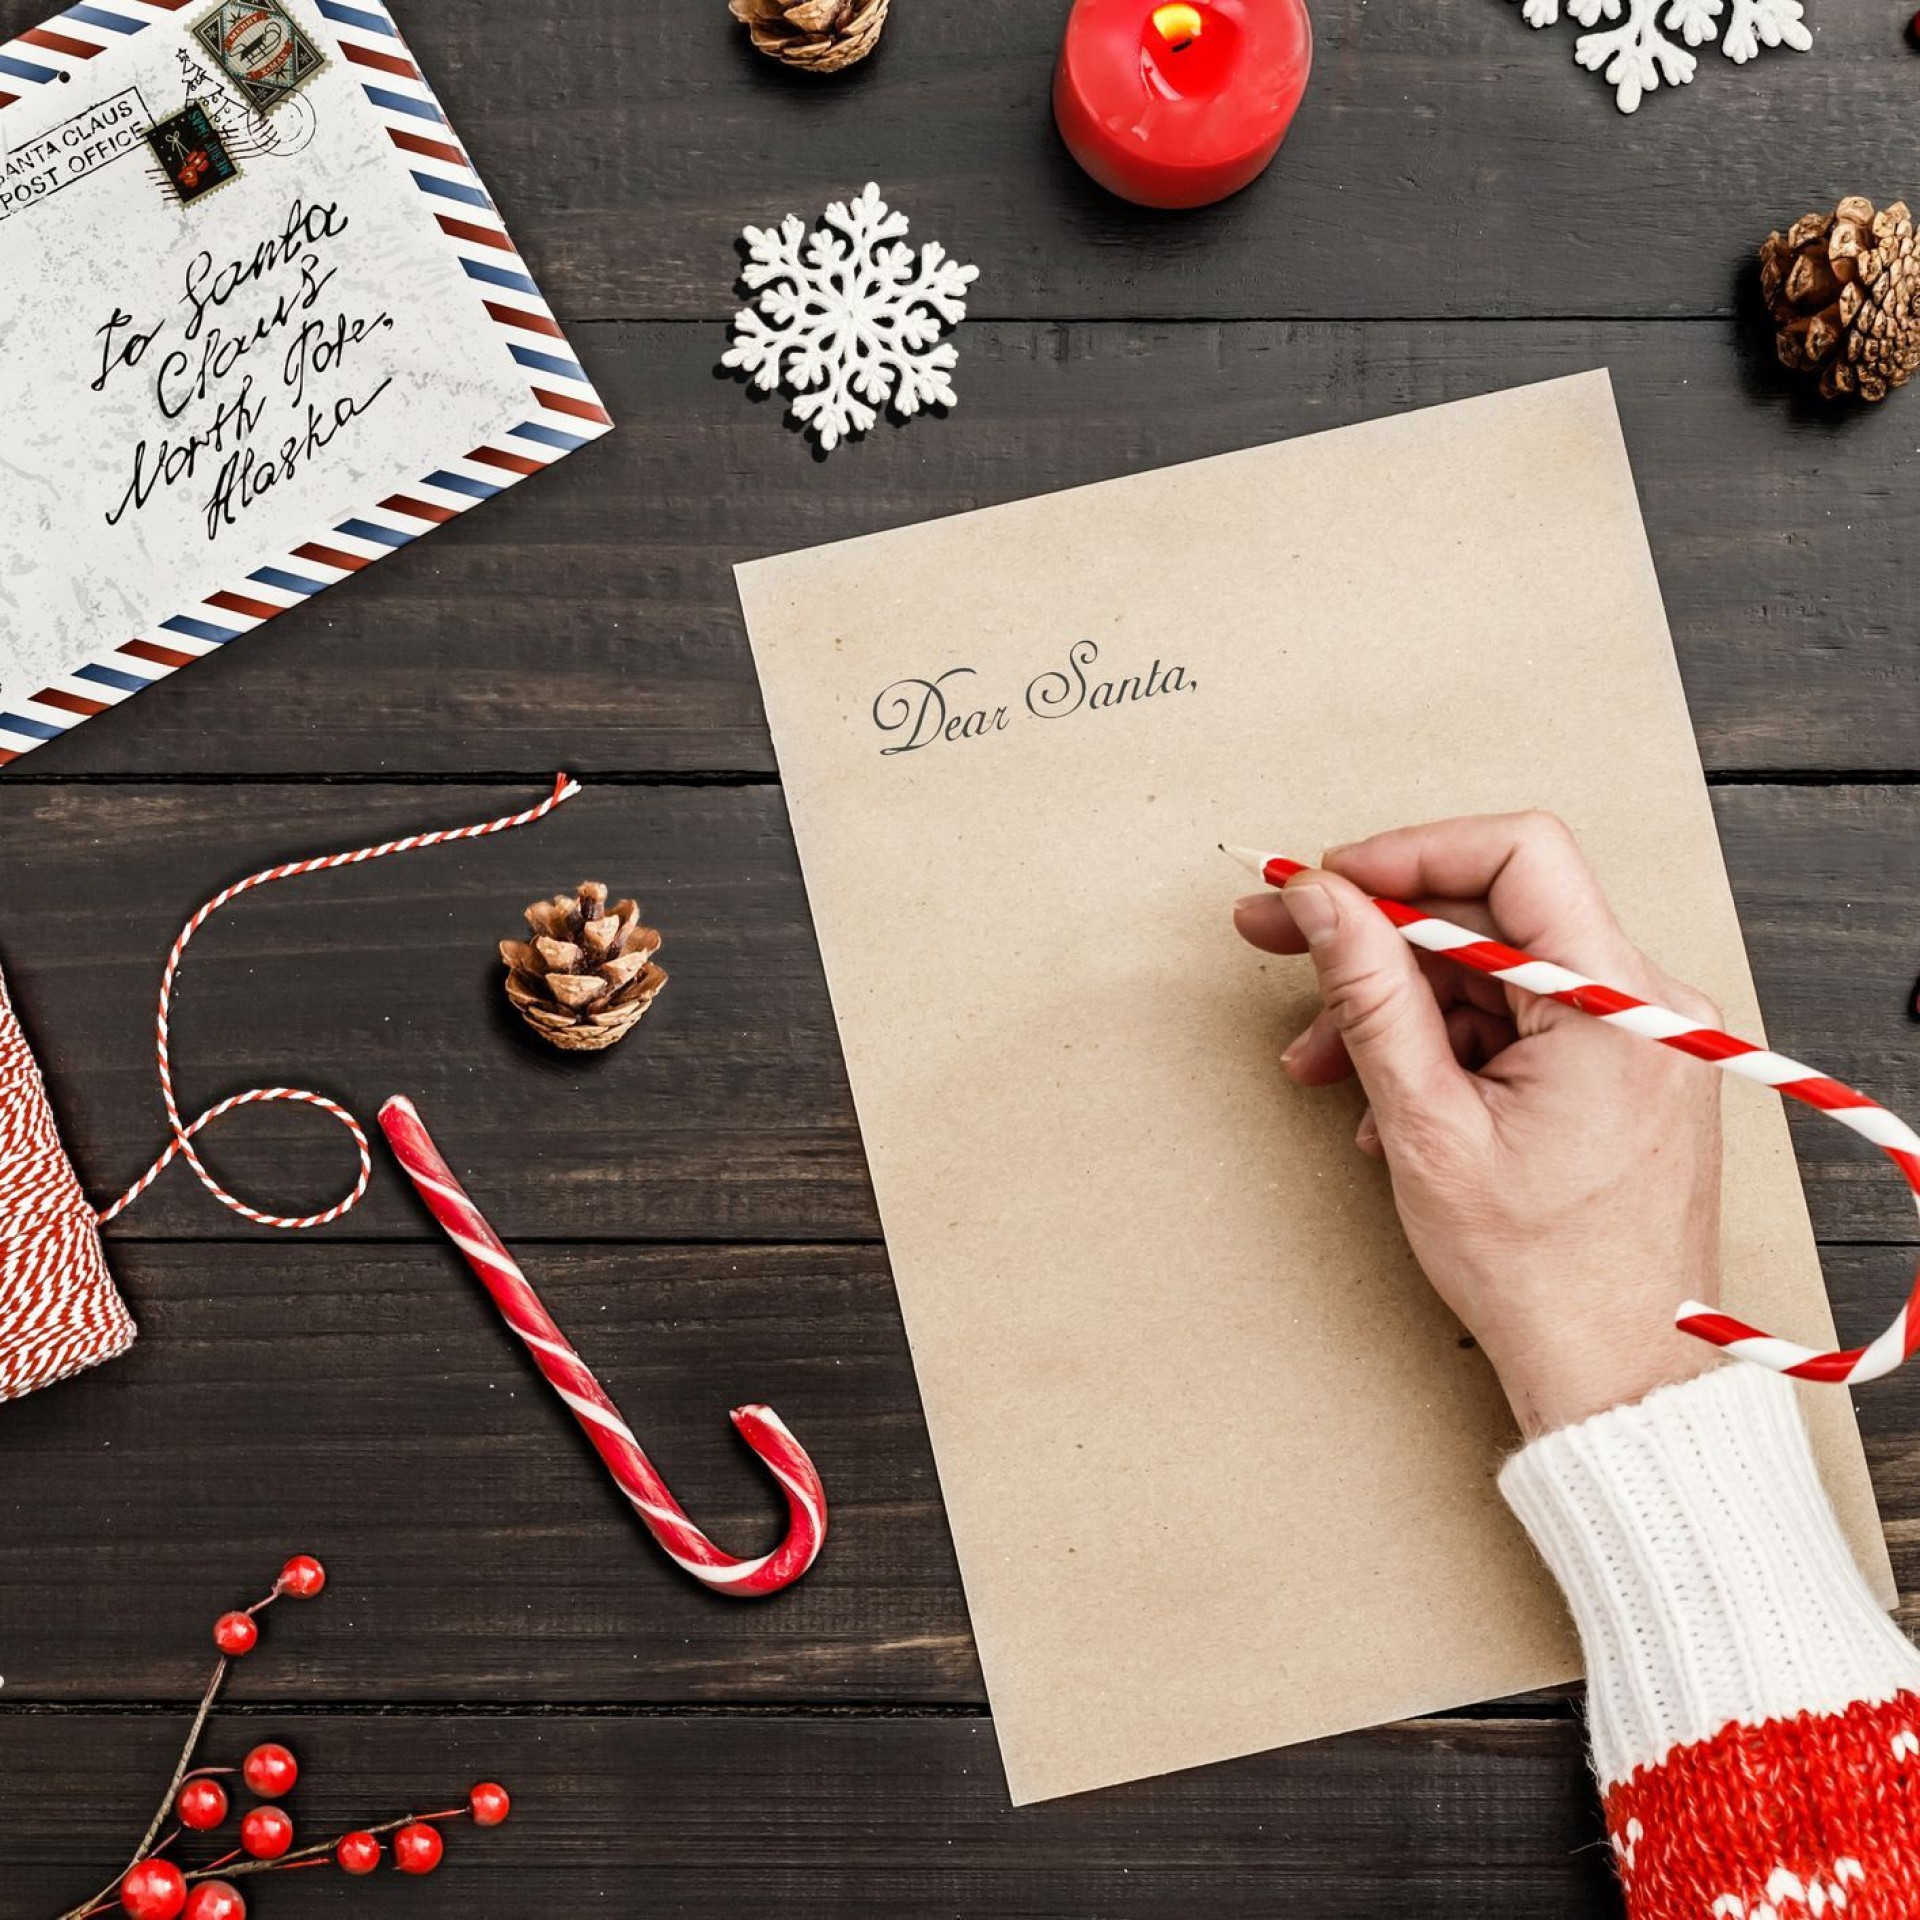 008 Wonderful Christma Stationery Template Word Free High Definition  Religiou For Downloadable1920